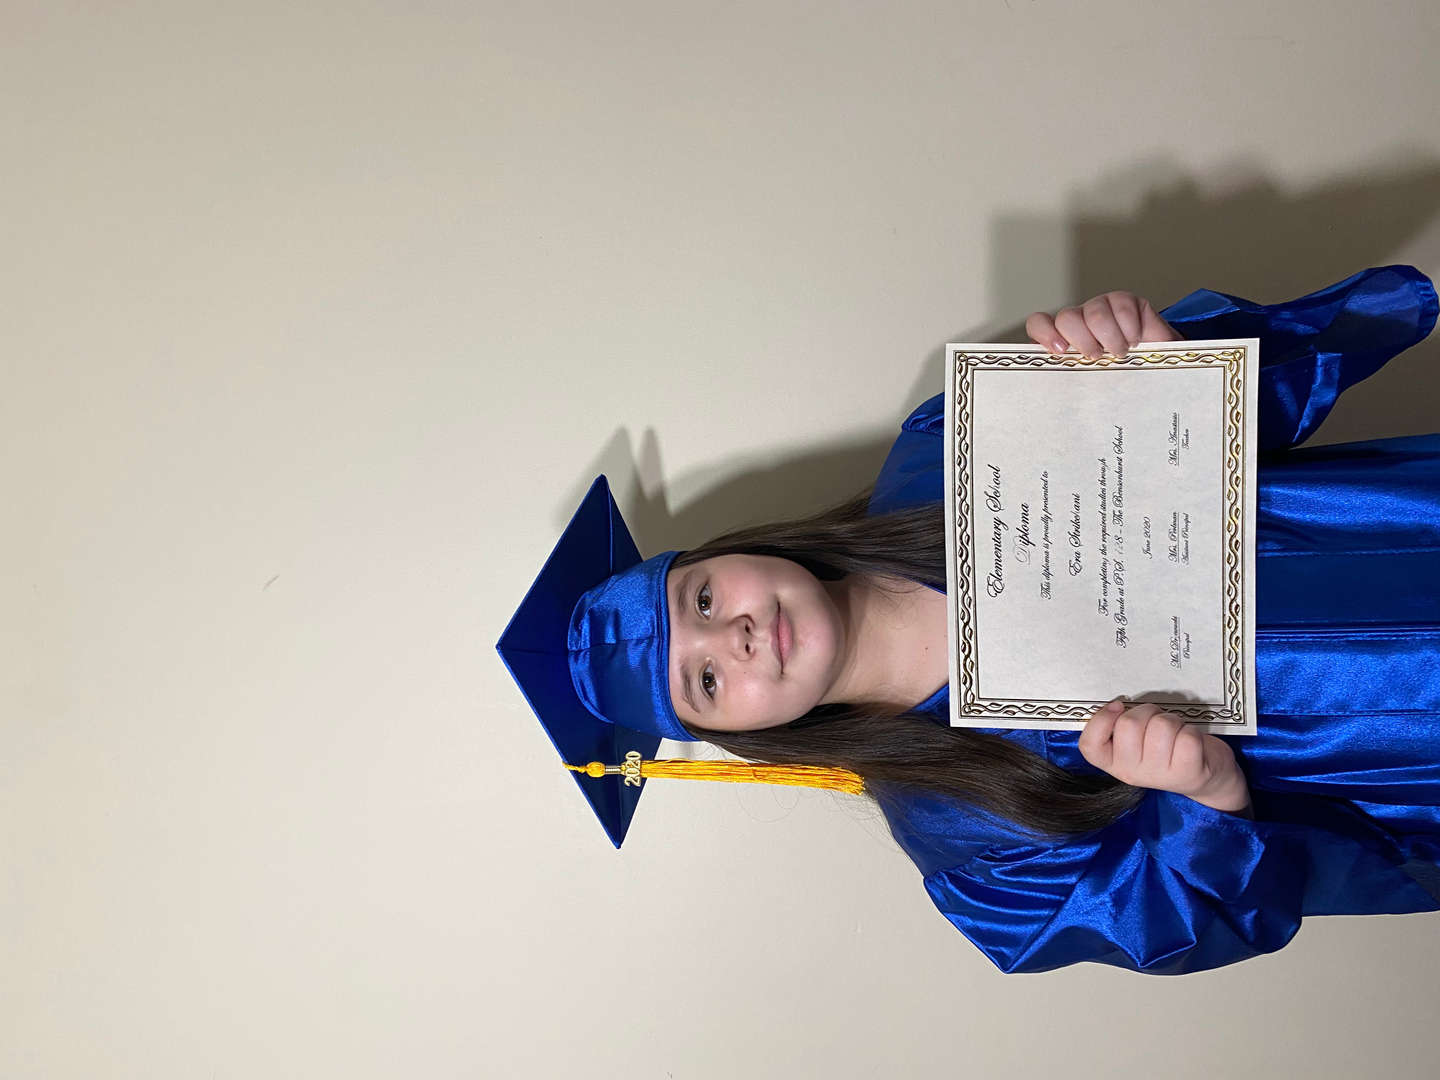 Fifth graduate holding her diploma